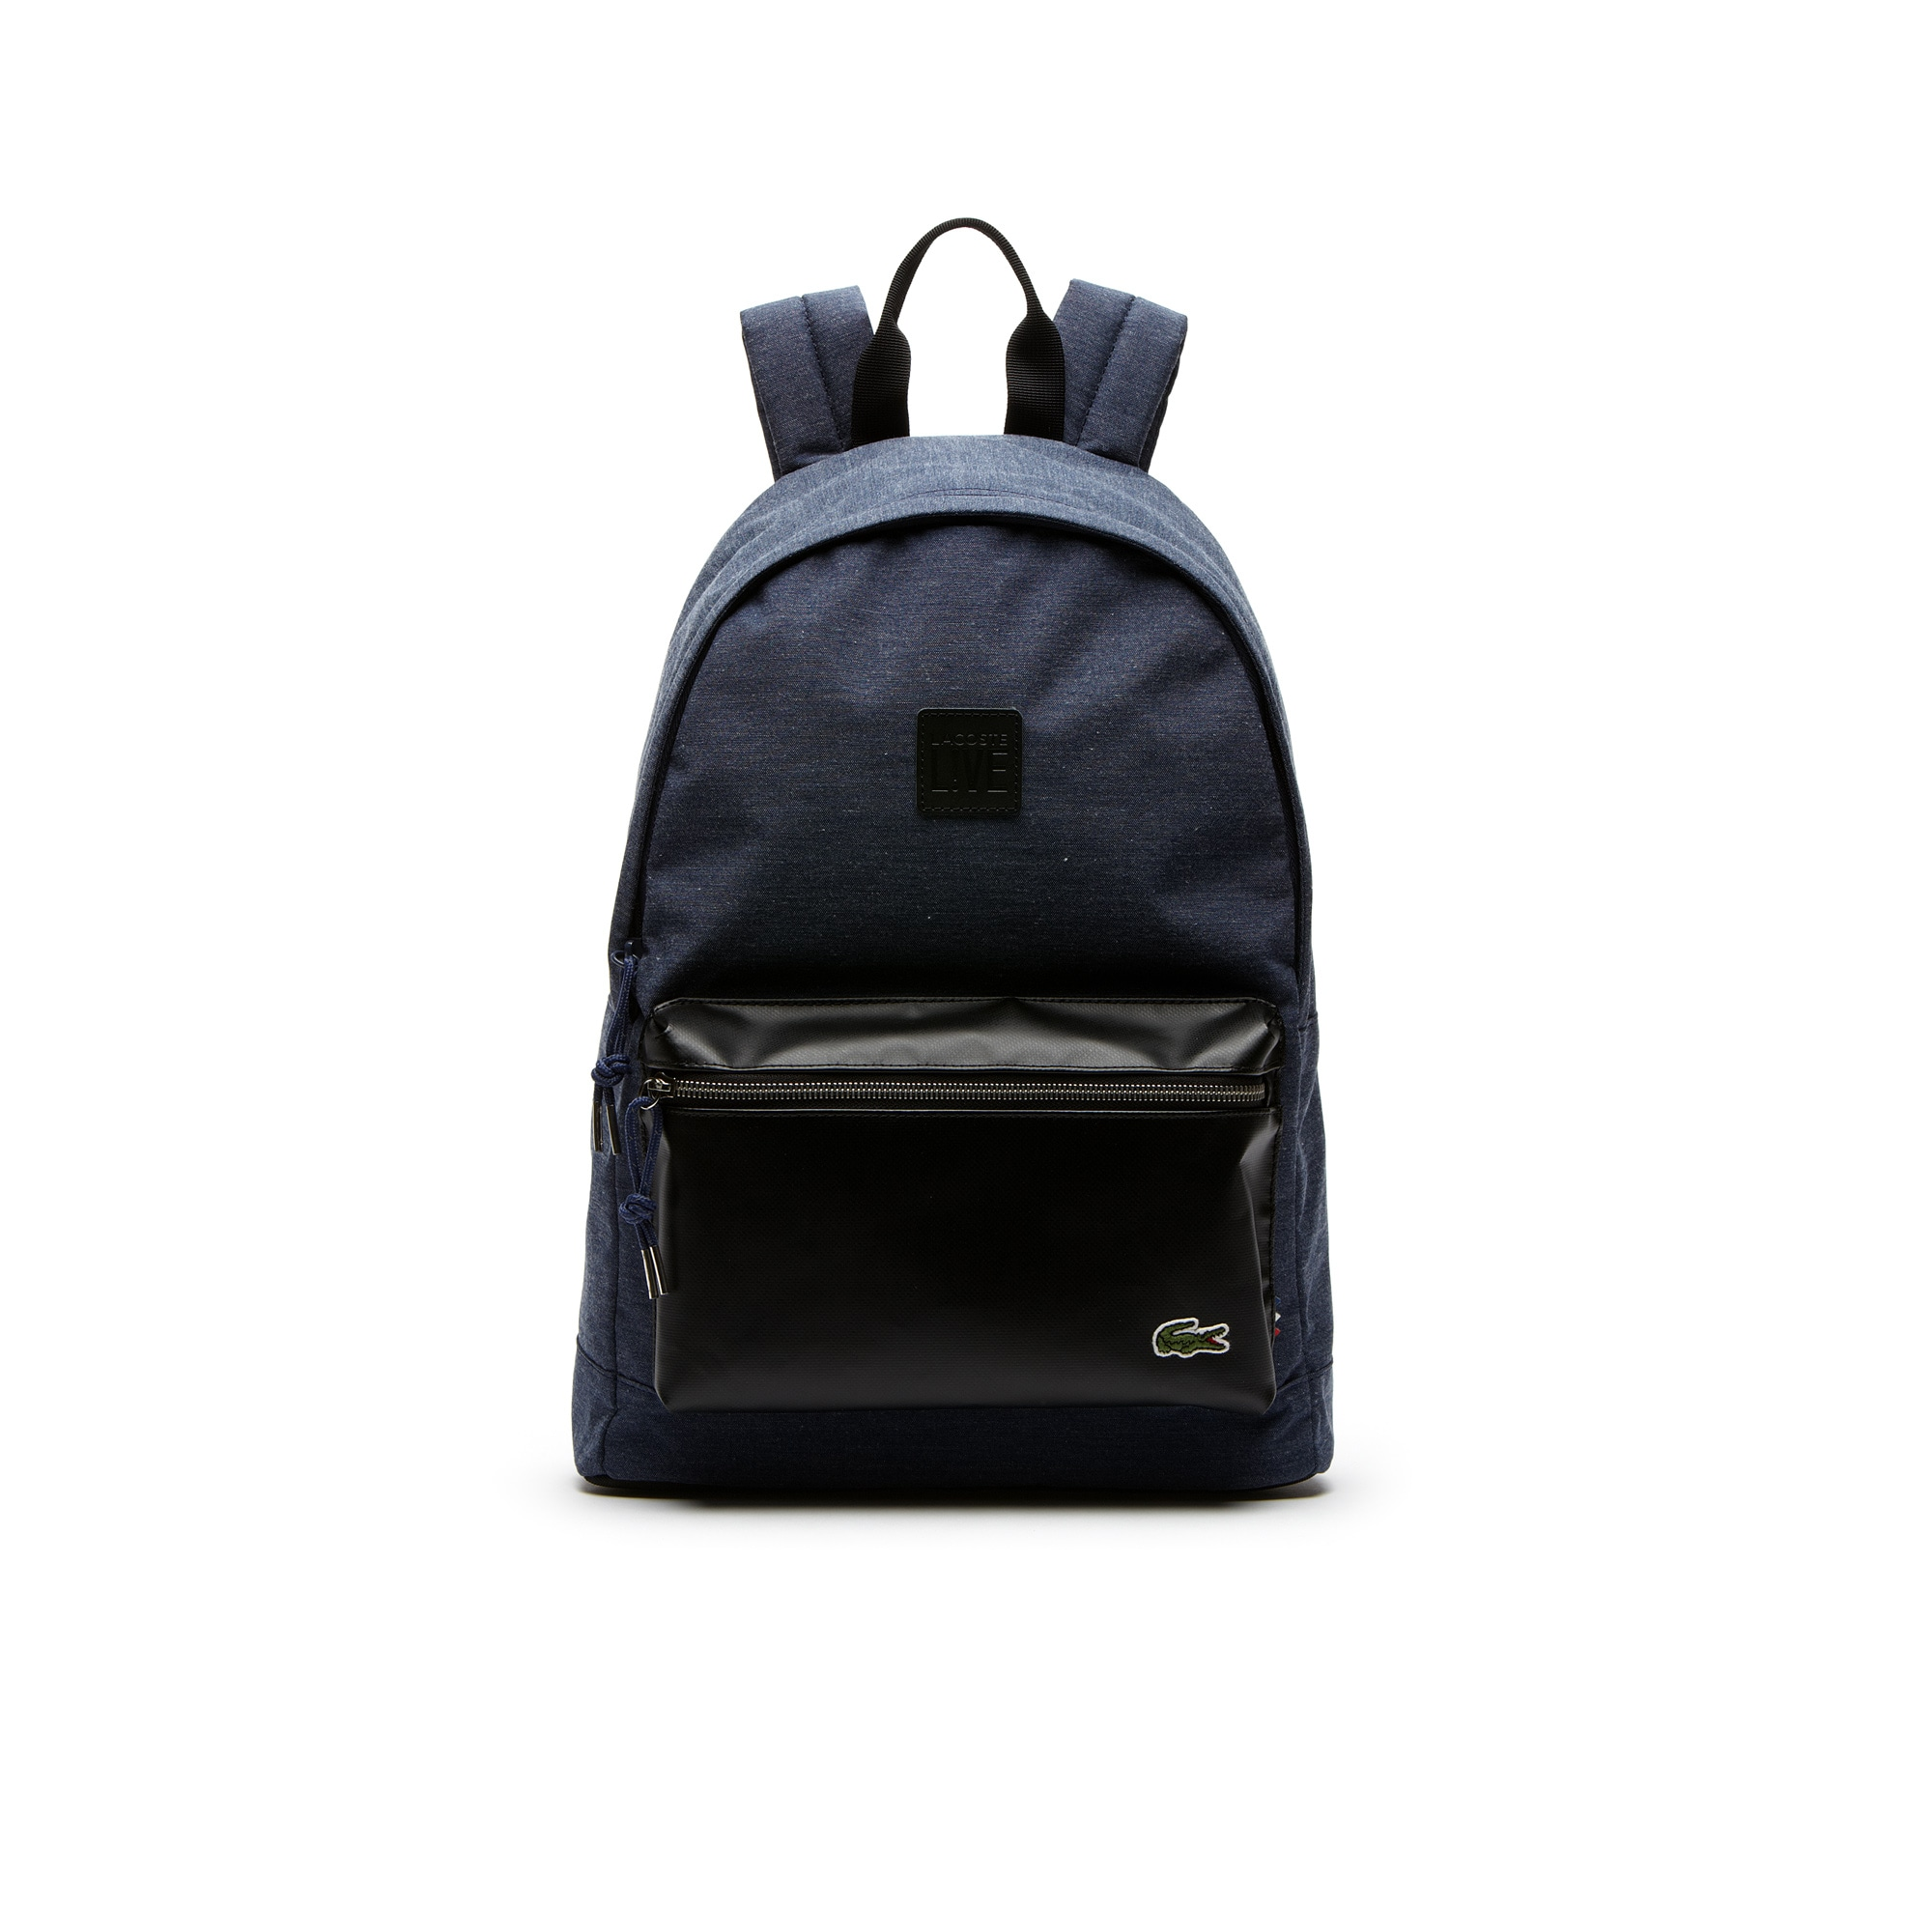 BackL!VE-Rucksack im Colorblock-Design